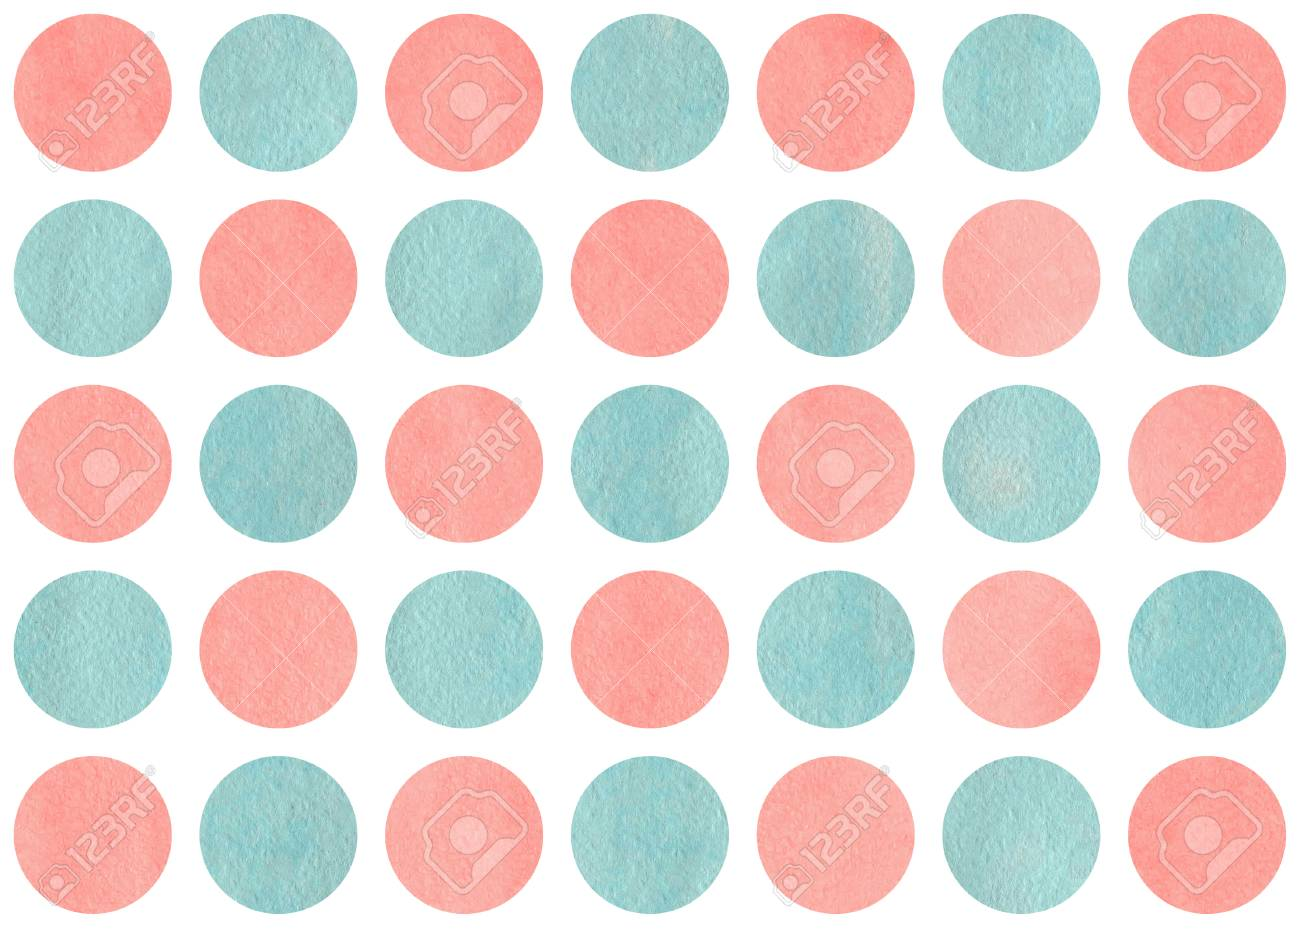 Watercolor Circles In Light Pink And Blue Color Pattern With